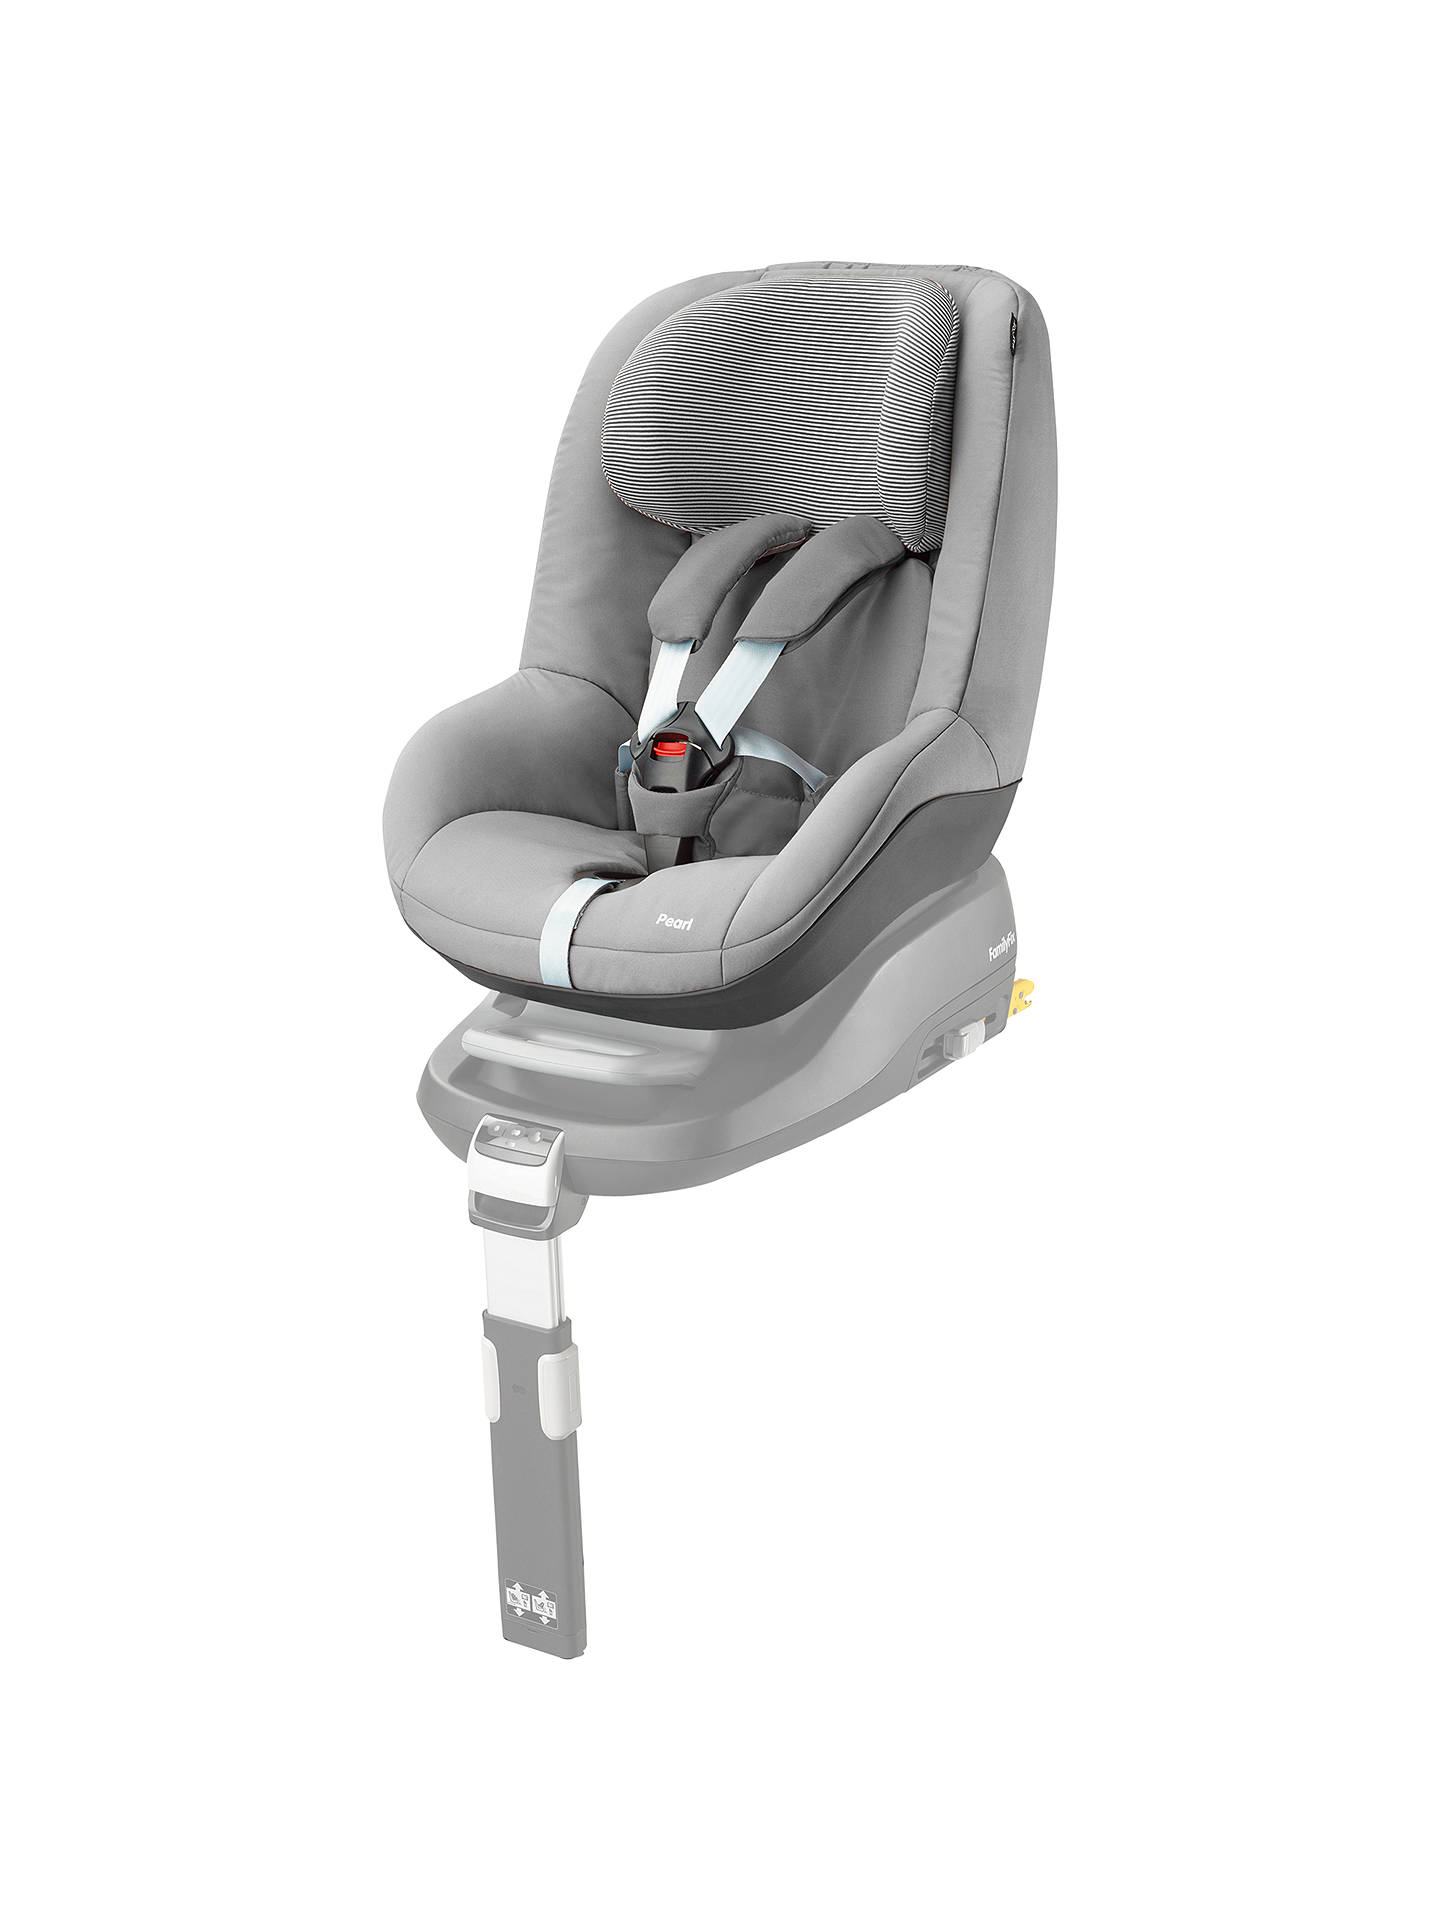 maxi cosi pearl group 1 car seat concrete grey at john lewis partners. Black Bedroom Furniture Sets. Home Design Ideas